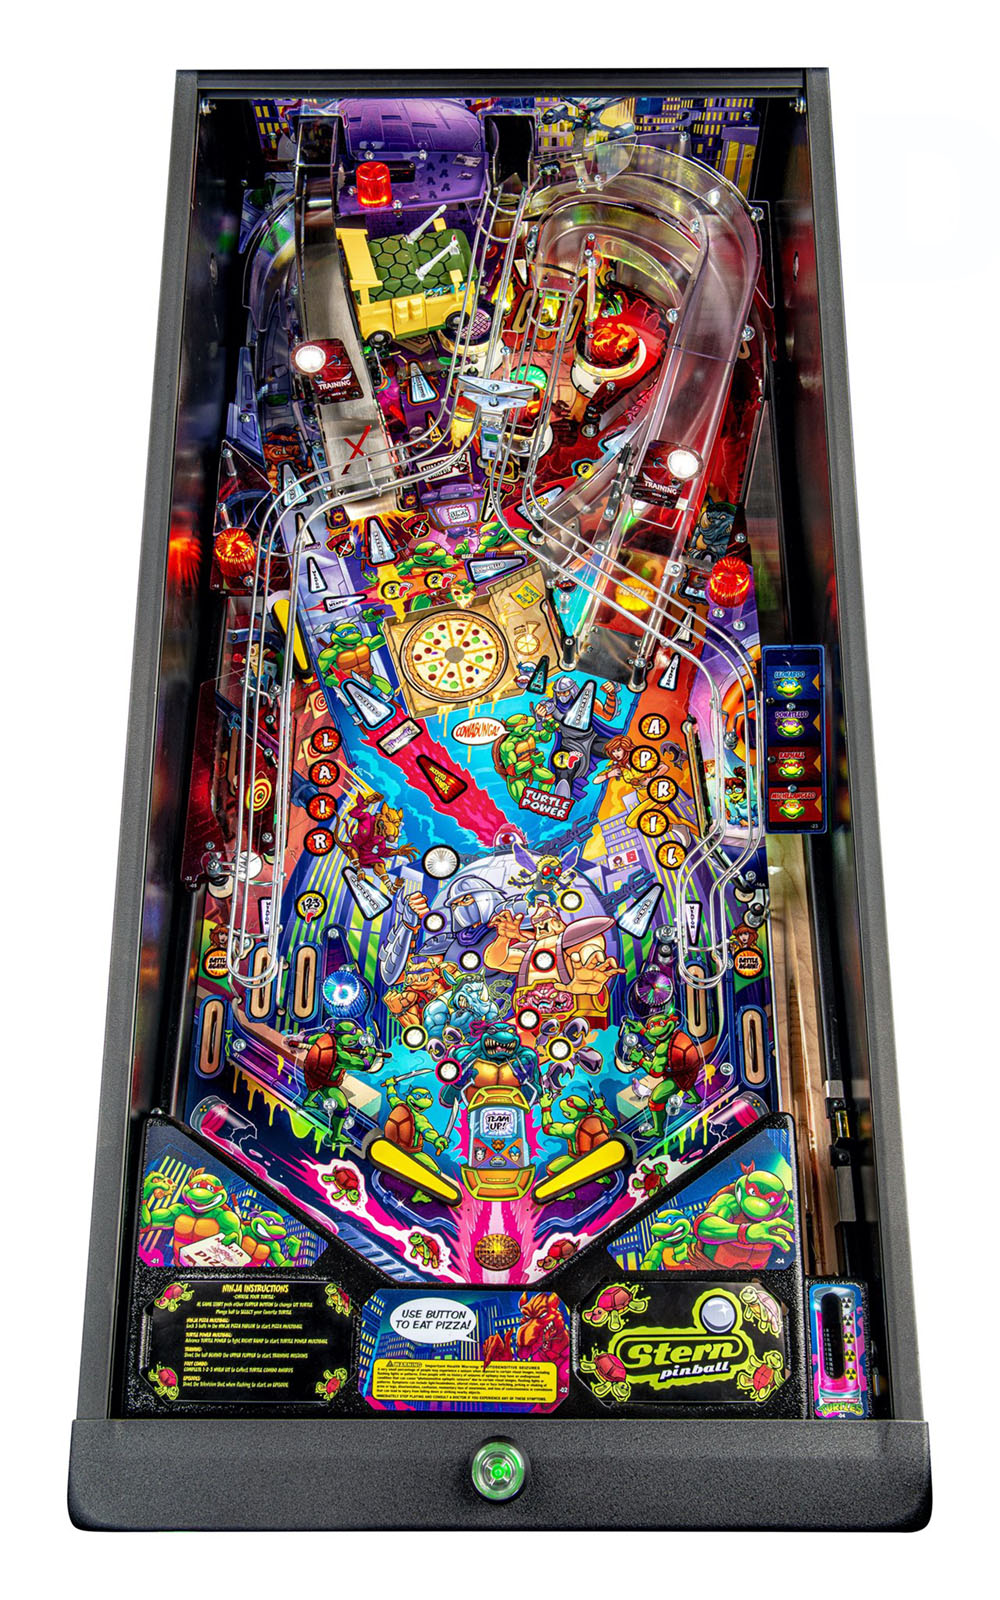 Teenage Mutant Ninja Turtles Pro Pinball Machine - Playfield Plan